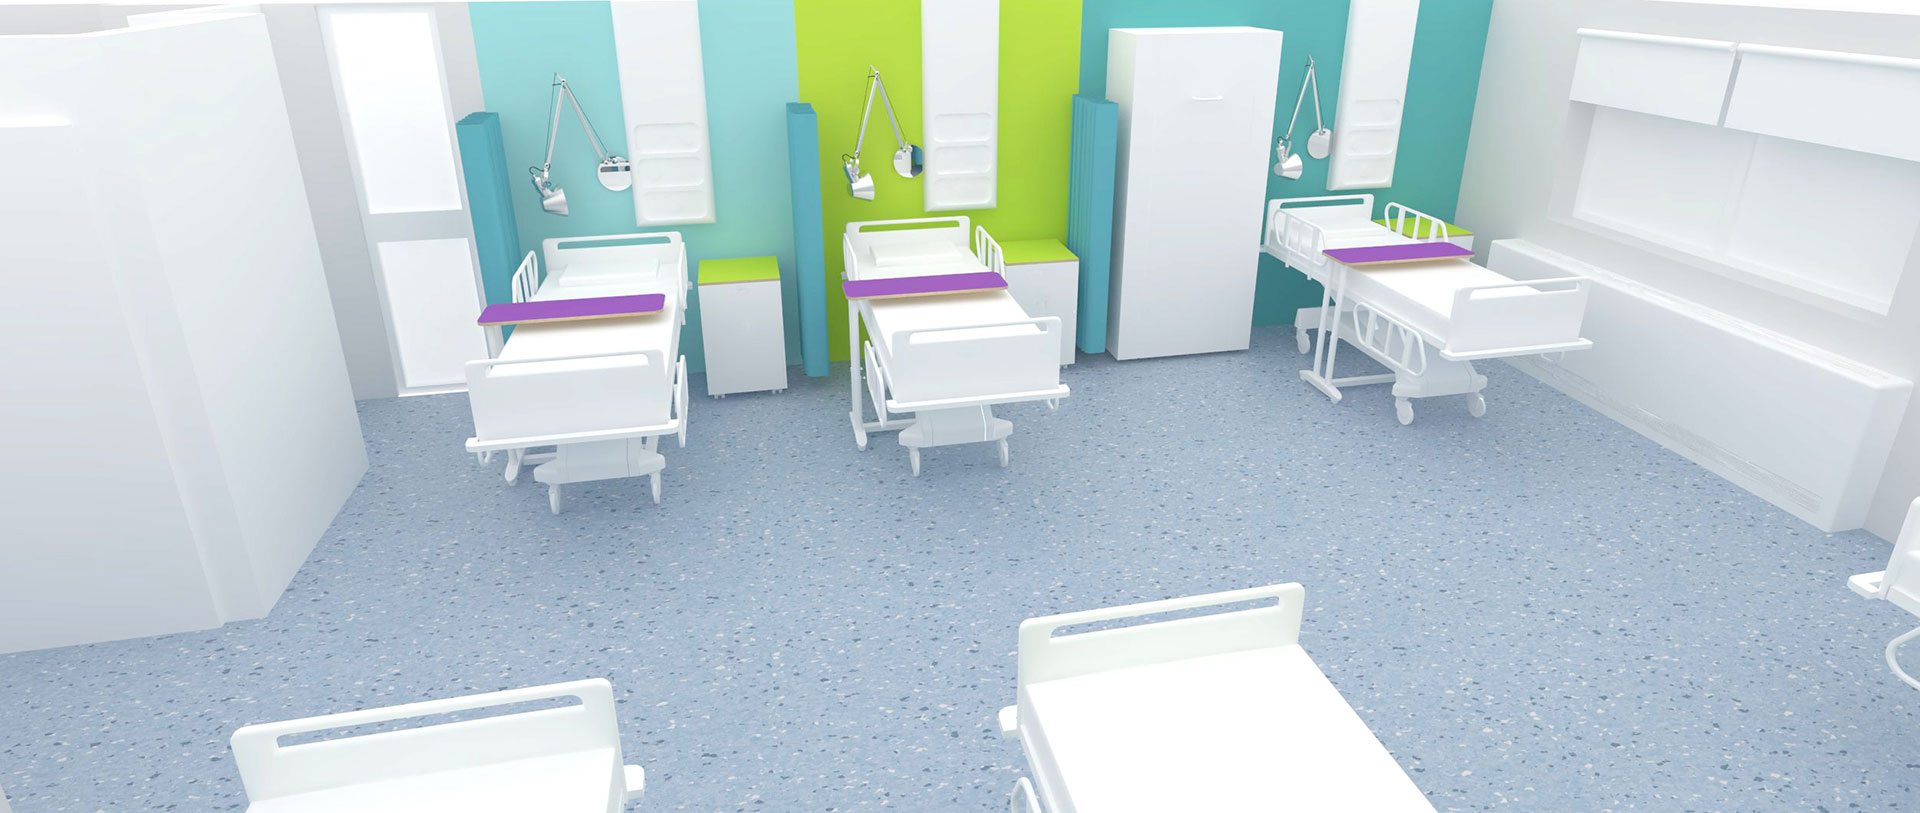 Beds differentiated by colour within the bay ward at Yeovil District Hospital